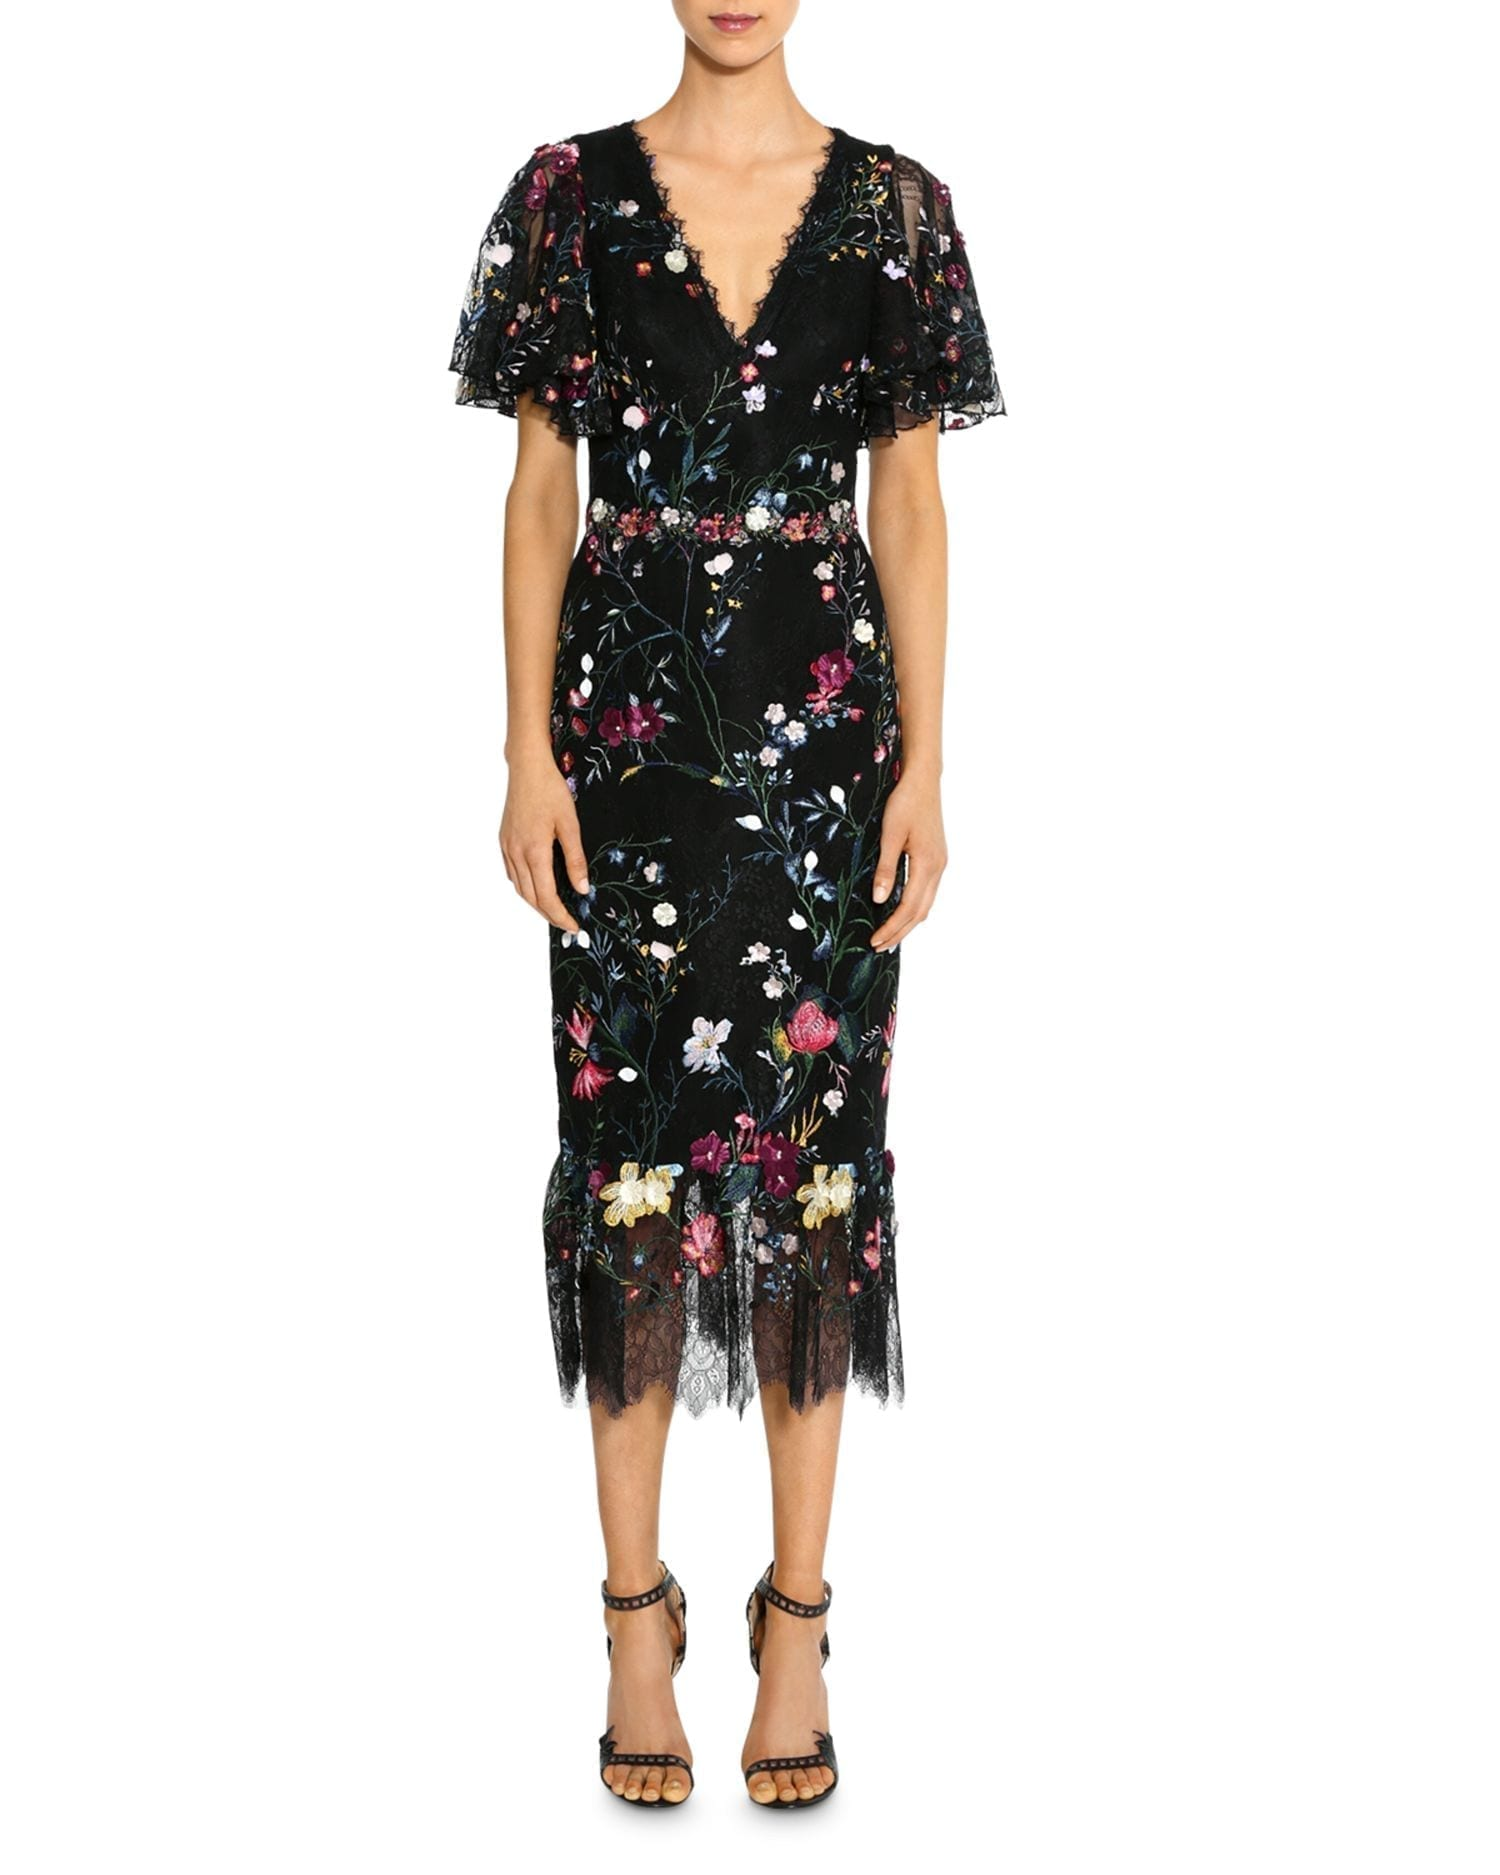 MARCHESA NOTTE Embroidered Floral Flutter-Sleeve Sheath Dress